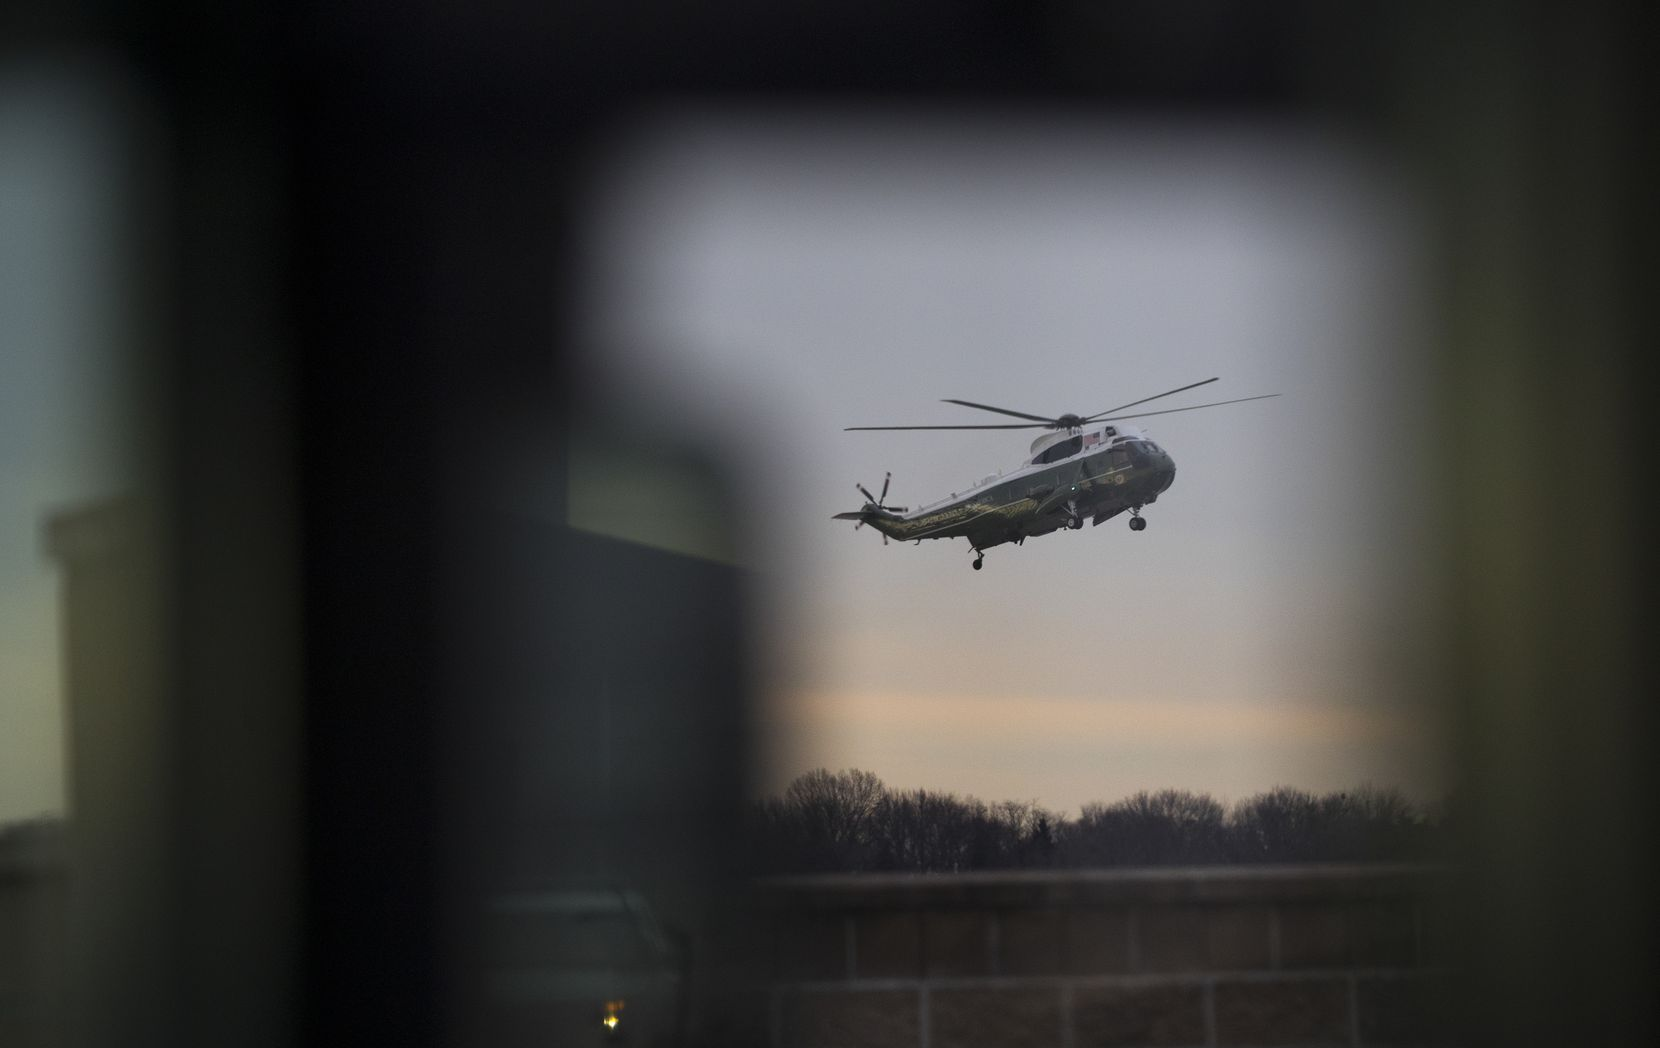 Marine One, carrying President Donald Trump, arrives at Dover Air Force Base to be present as the body of Chief Petty Officer William Owens was returned to the U.S., Feb. 1, 2017. The father of Chief Petty Officer Owens criticized the White House this weekend over the mission that killed his son and called for an investigation.